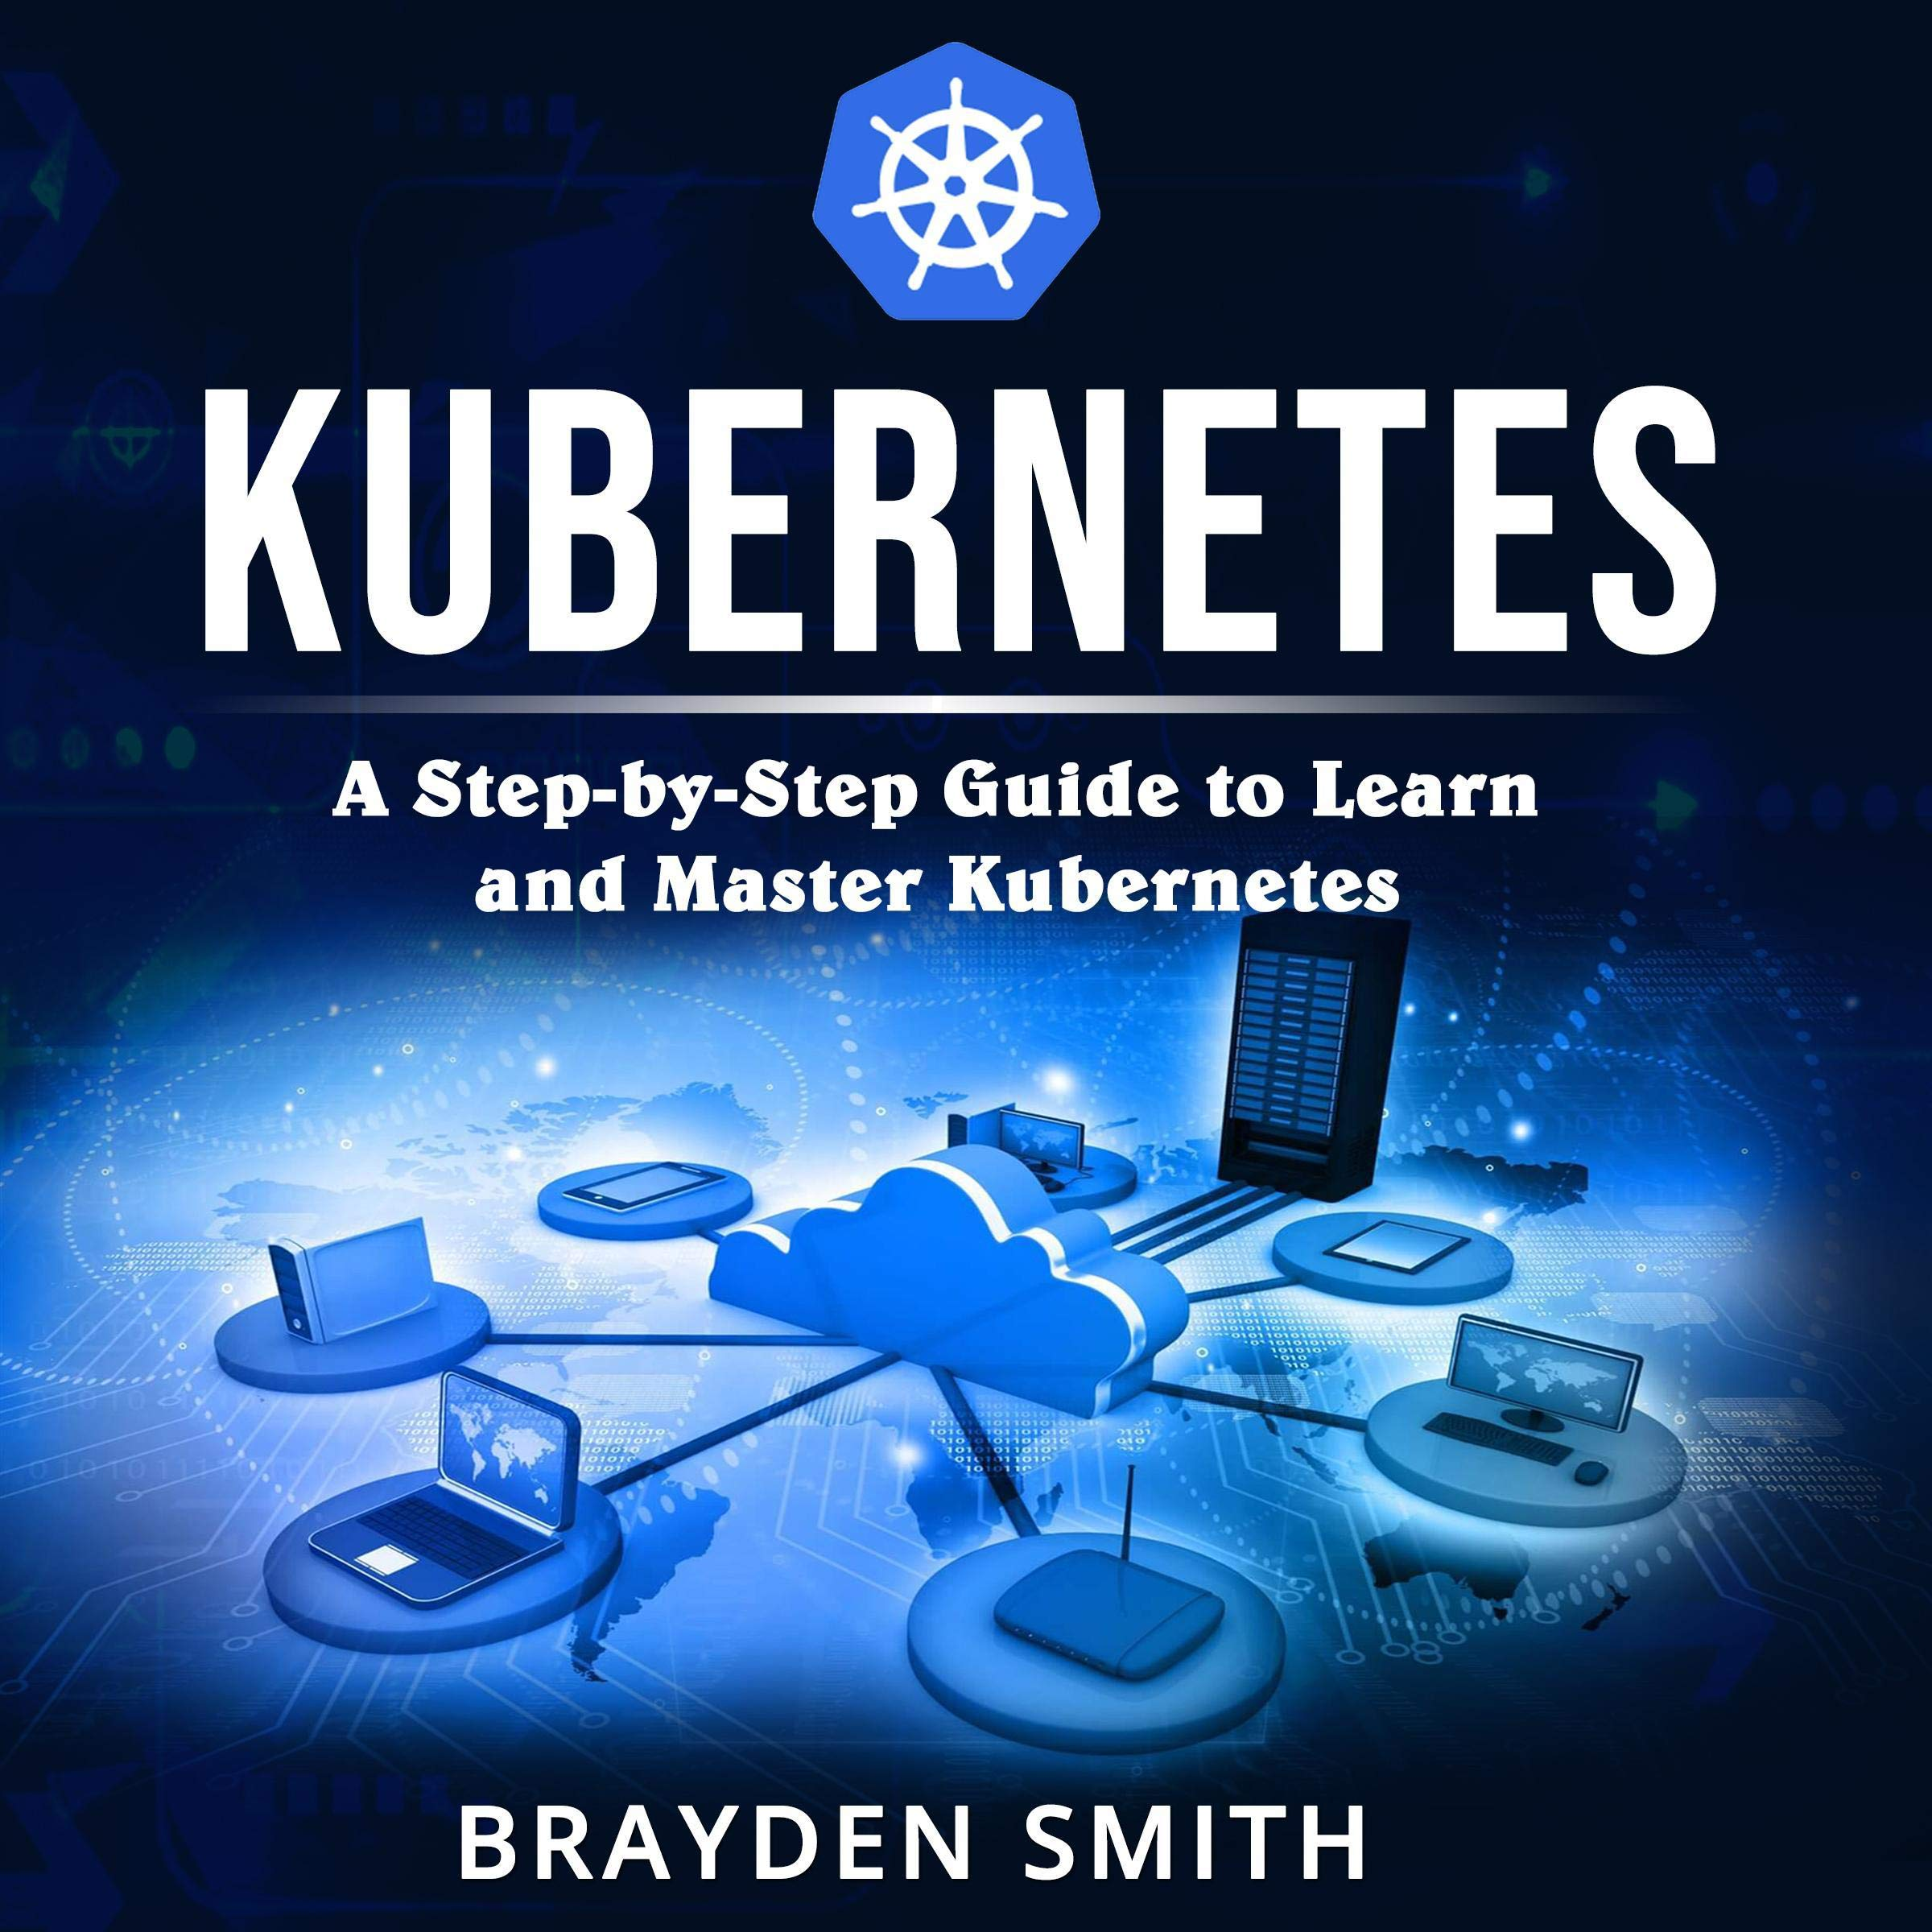 Kubernetes: A Step-by-Step Guide to Learn and Master Kubernetes